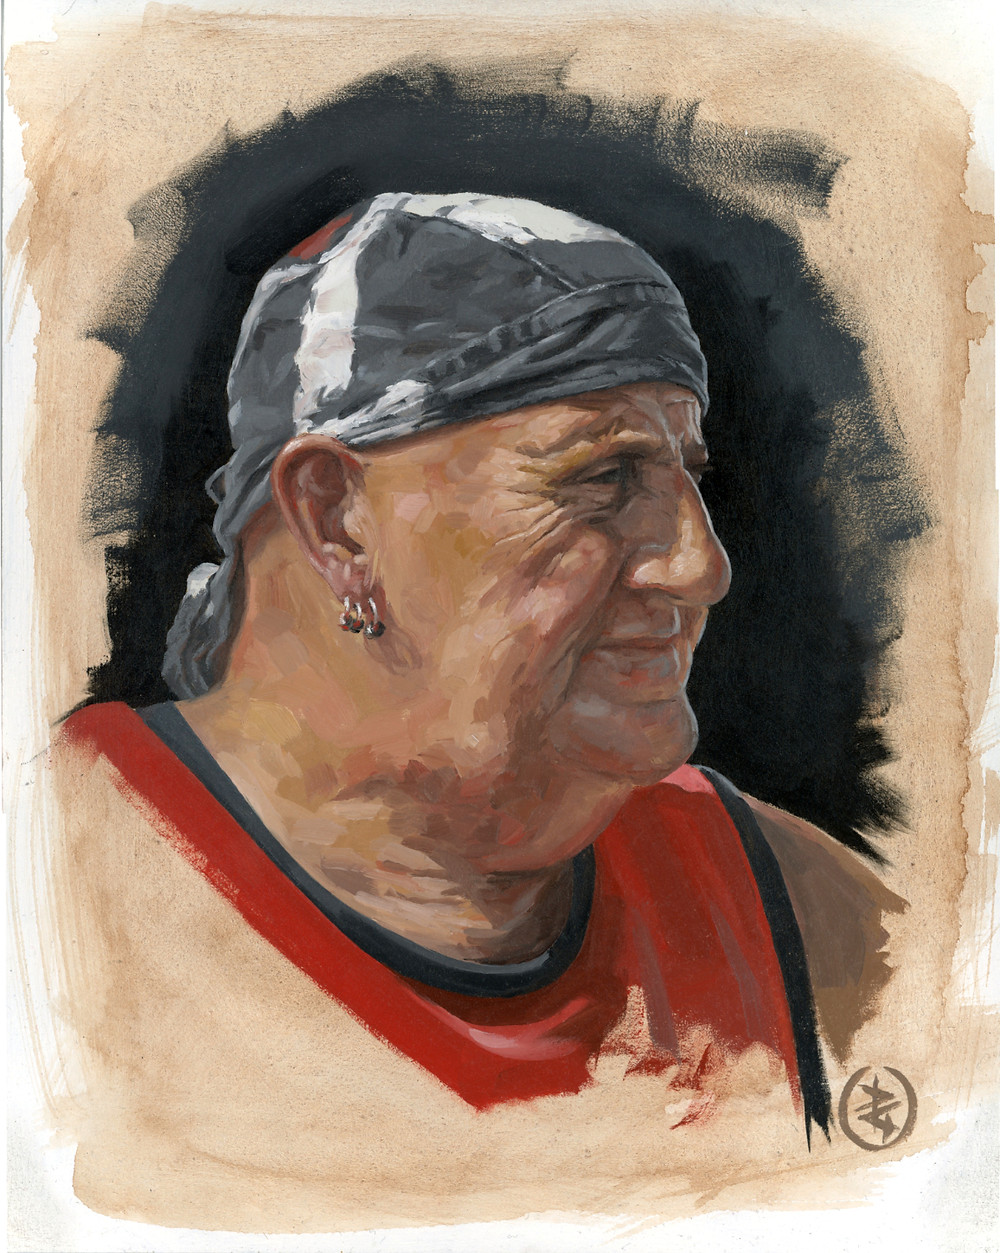 Oil painting by Pete Underhill of man with earring and bandana titled Ken